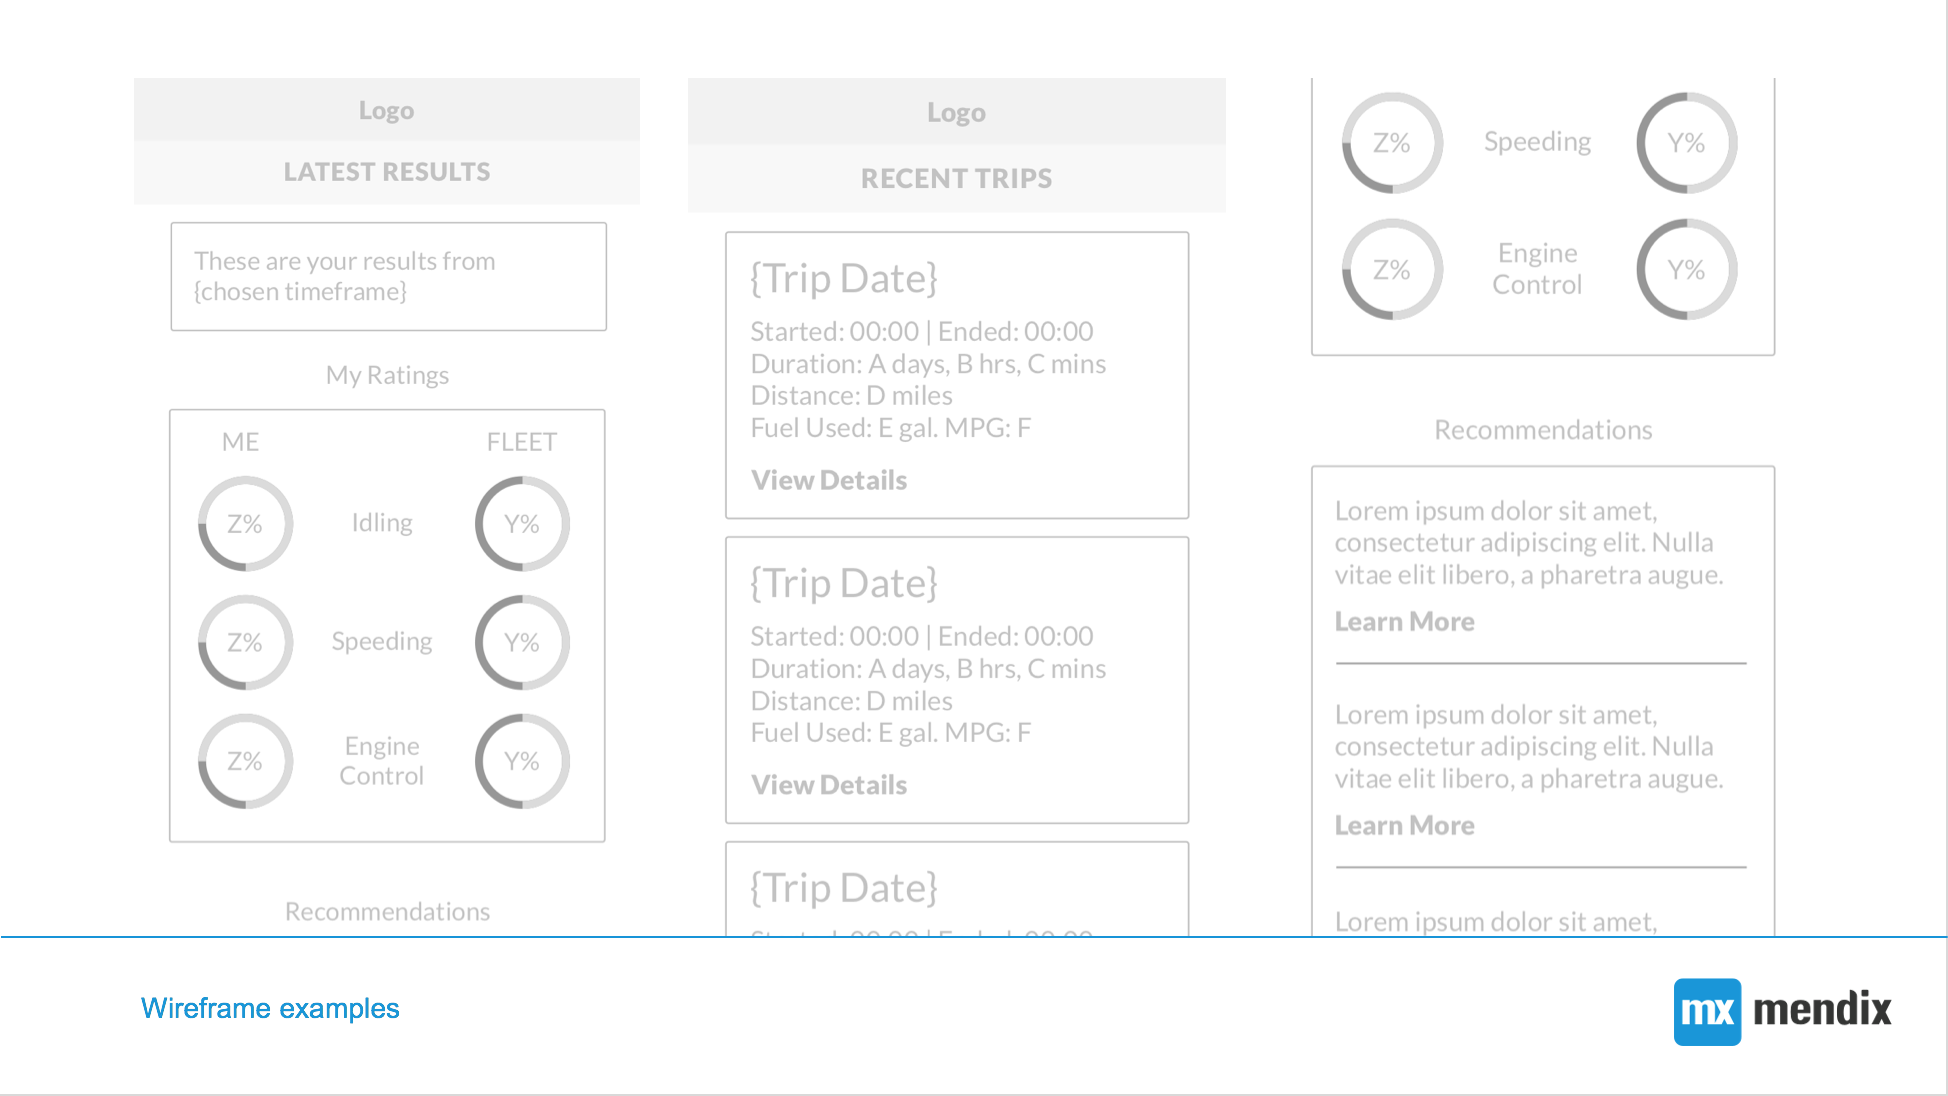 vnomics wireframes